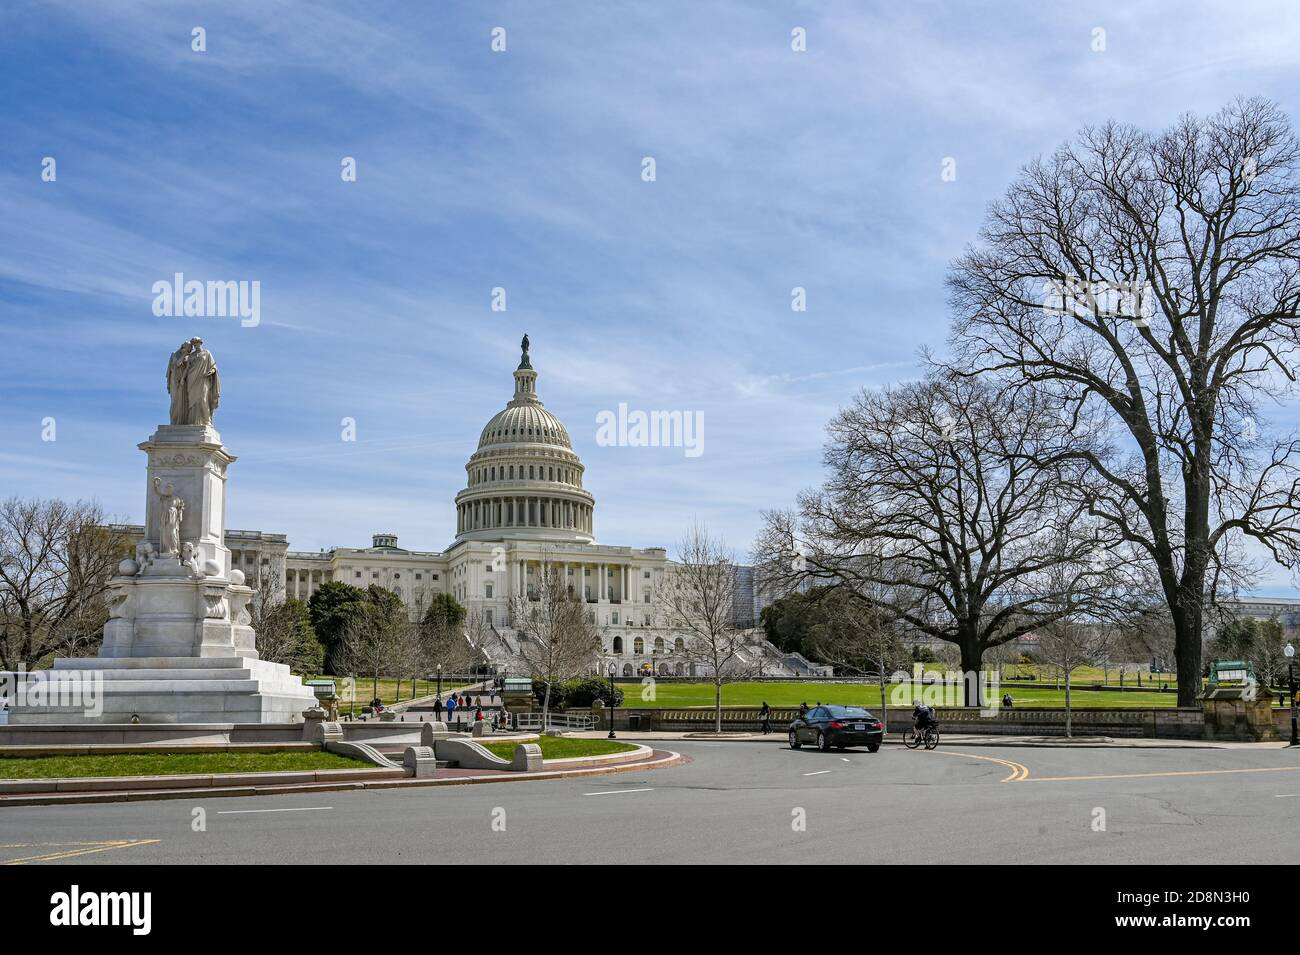 United States Capitol and Capitol Hill viewed from the National Mall. The Capitol building is the home of US Congress. Stock Photo